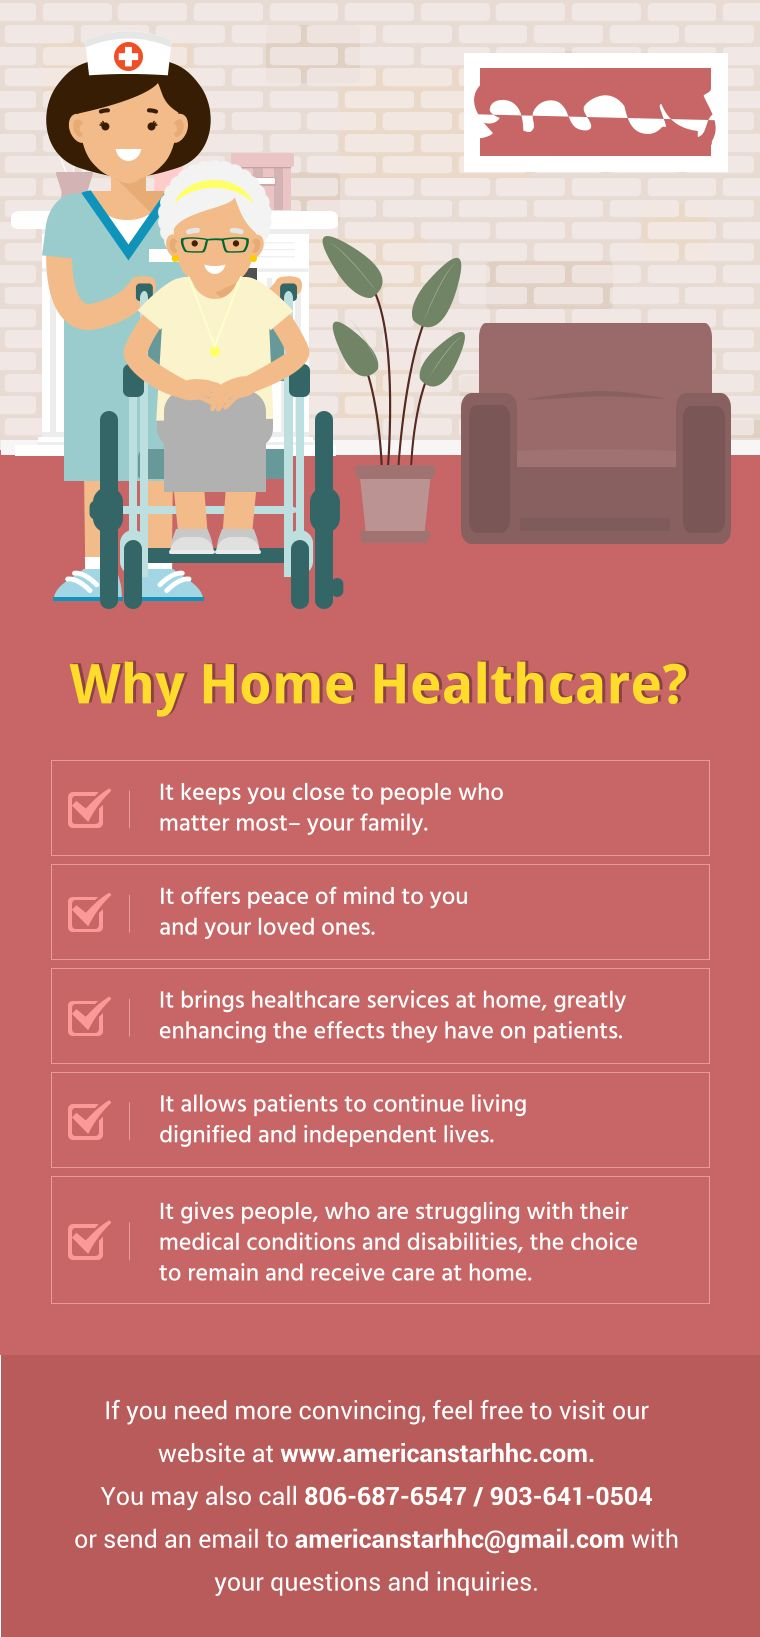 Why Home Healthcare? Healthcare Services Home health